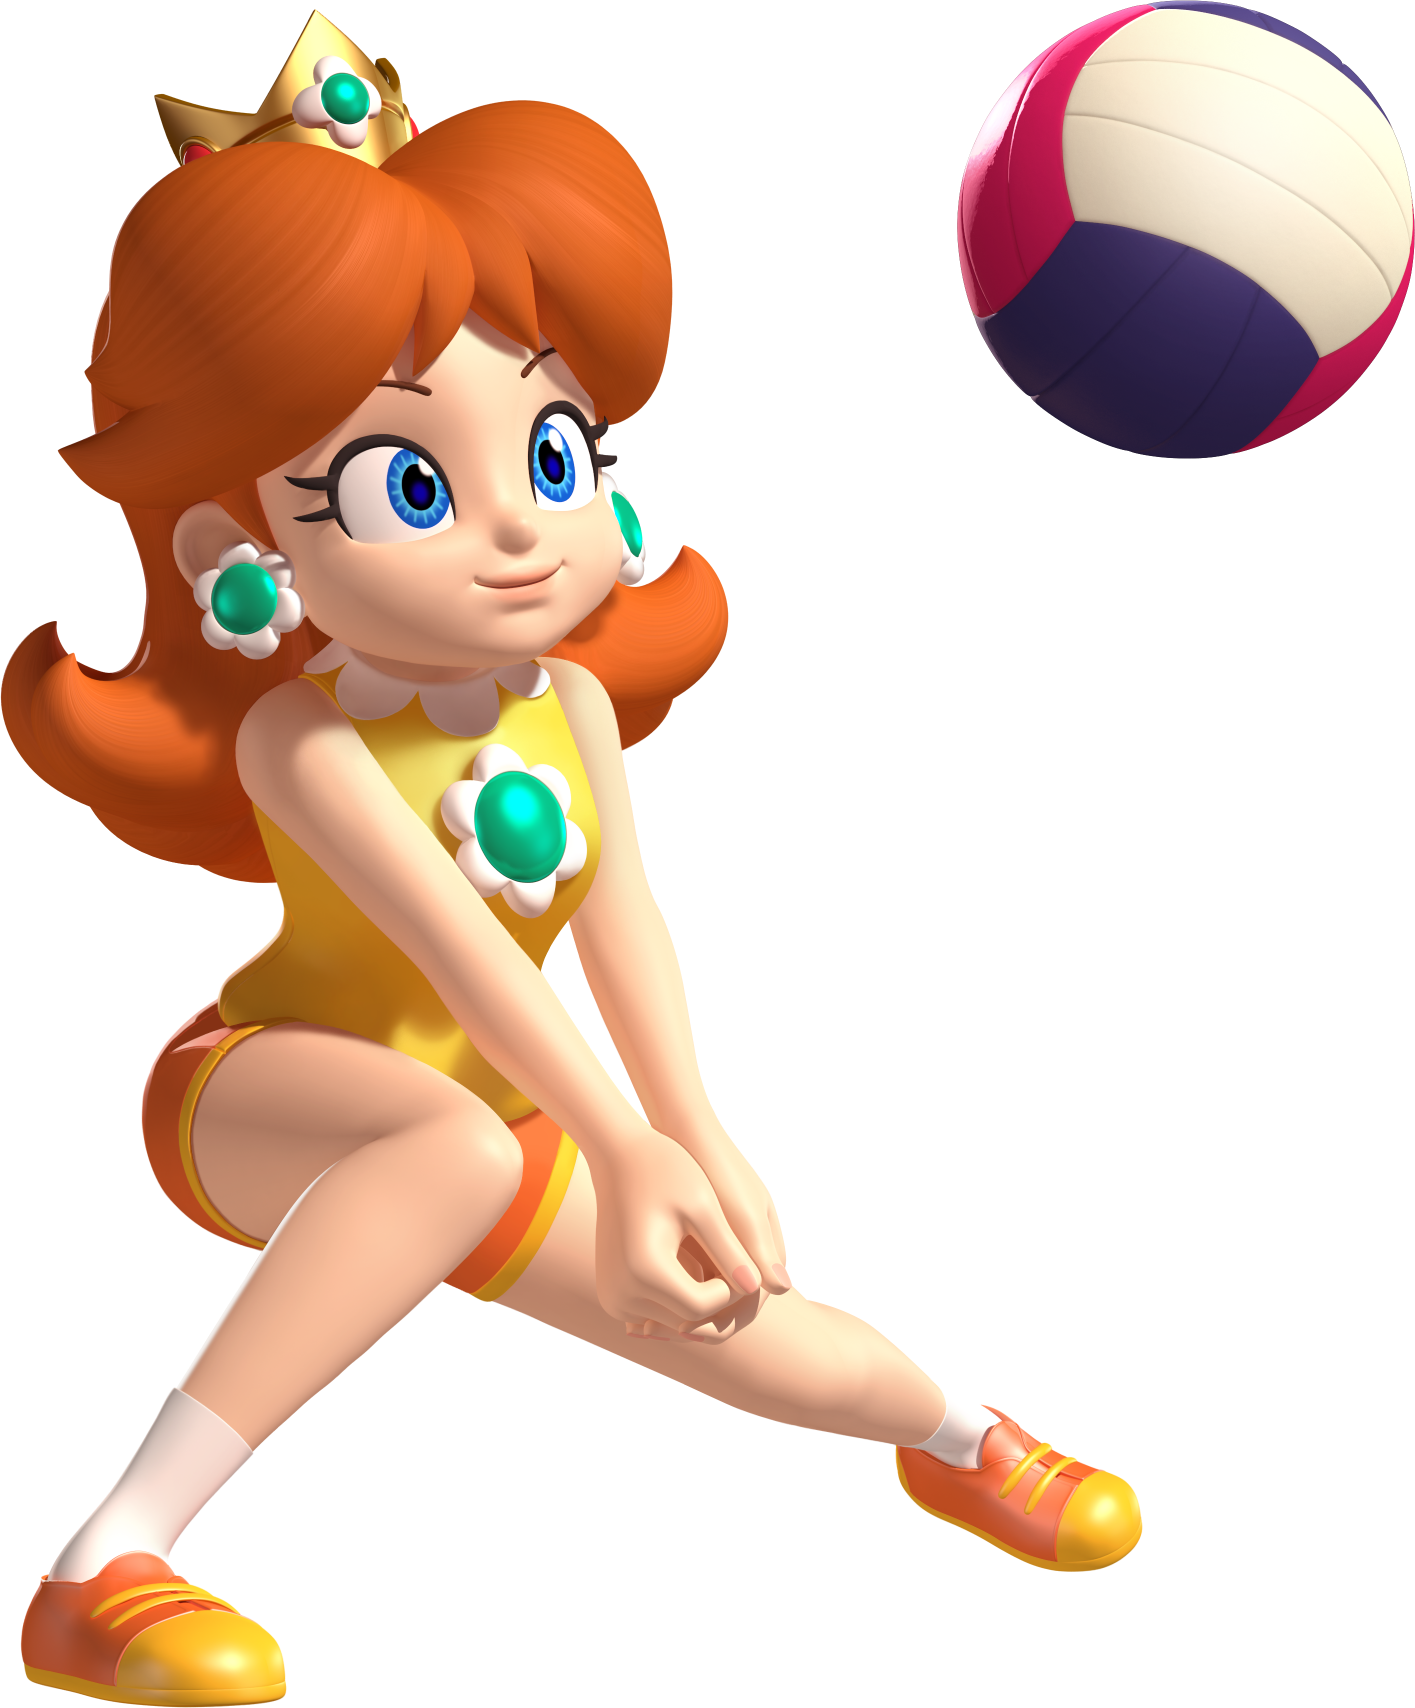 Image daisy png life. Clipart volleyball angry